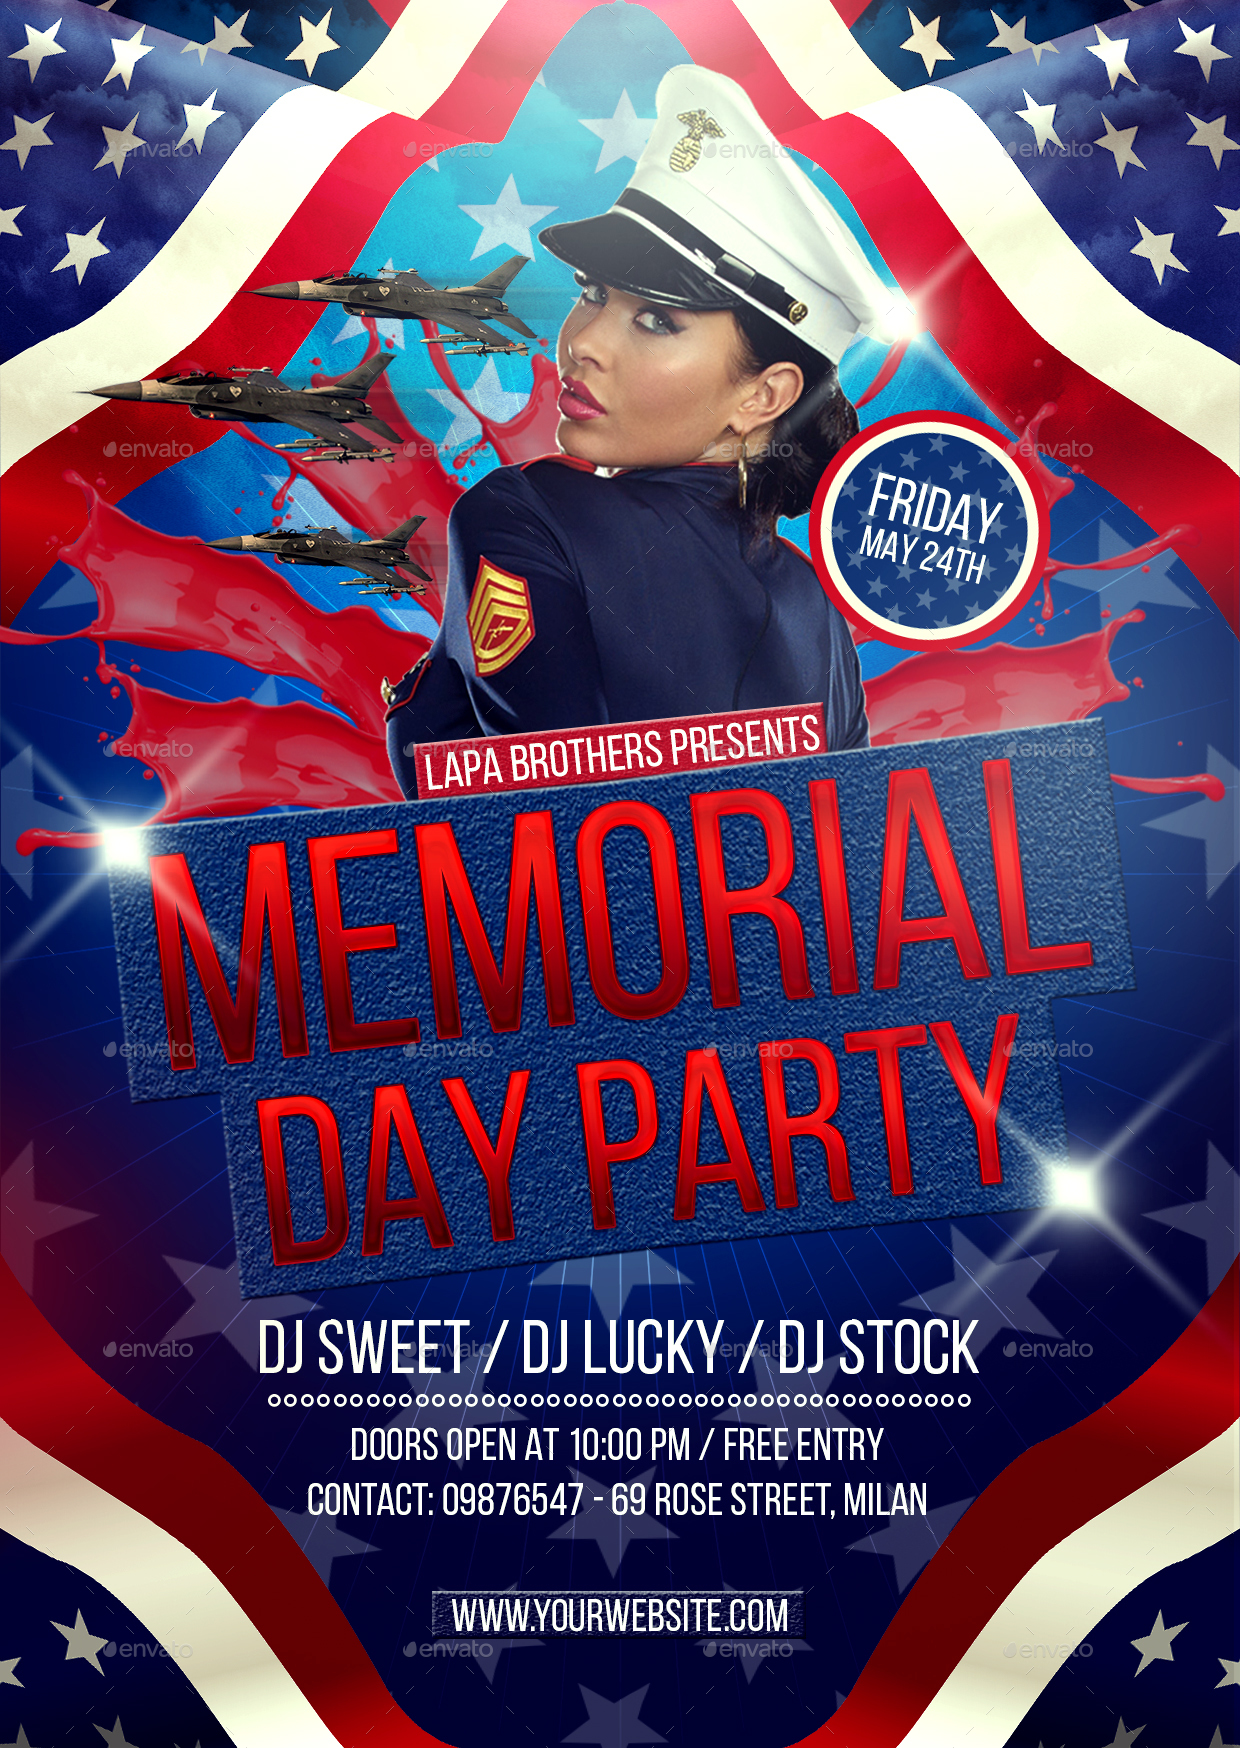 memorial day party flyer templatejpg